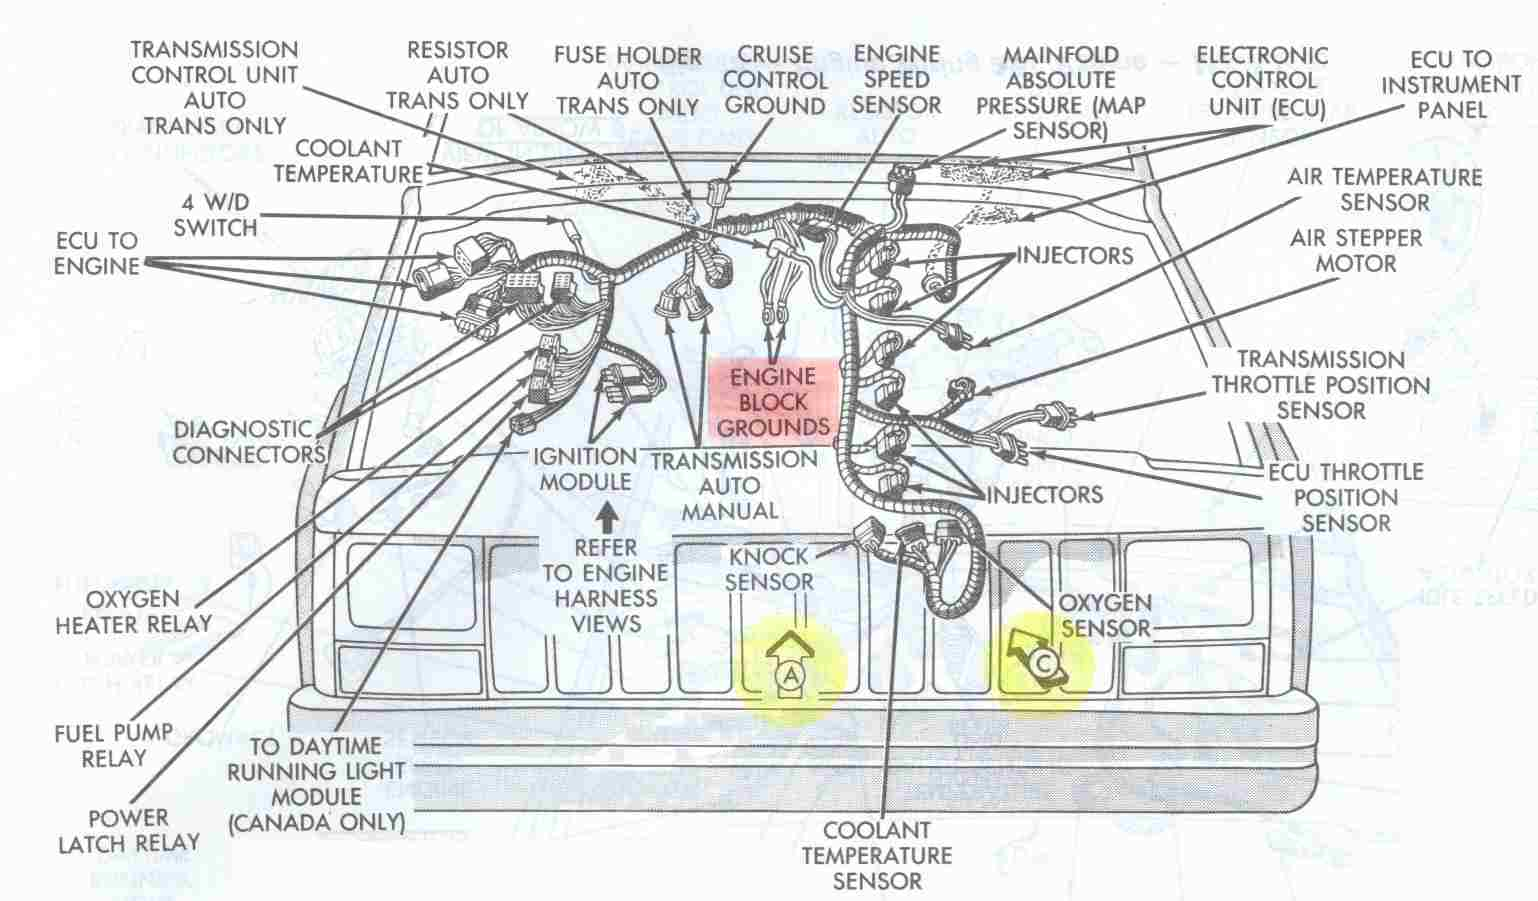 Electrical_Engine_Ground_Points_Overview jeep cherokee electrical diagnosing erratic behavior of engine 96 jeep grand cherokee wiring diagram at edmiracle.co